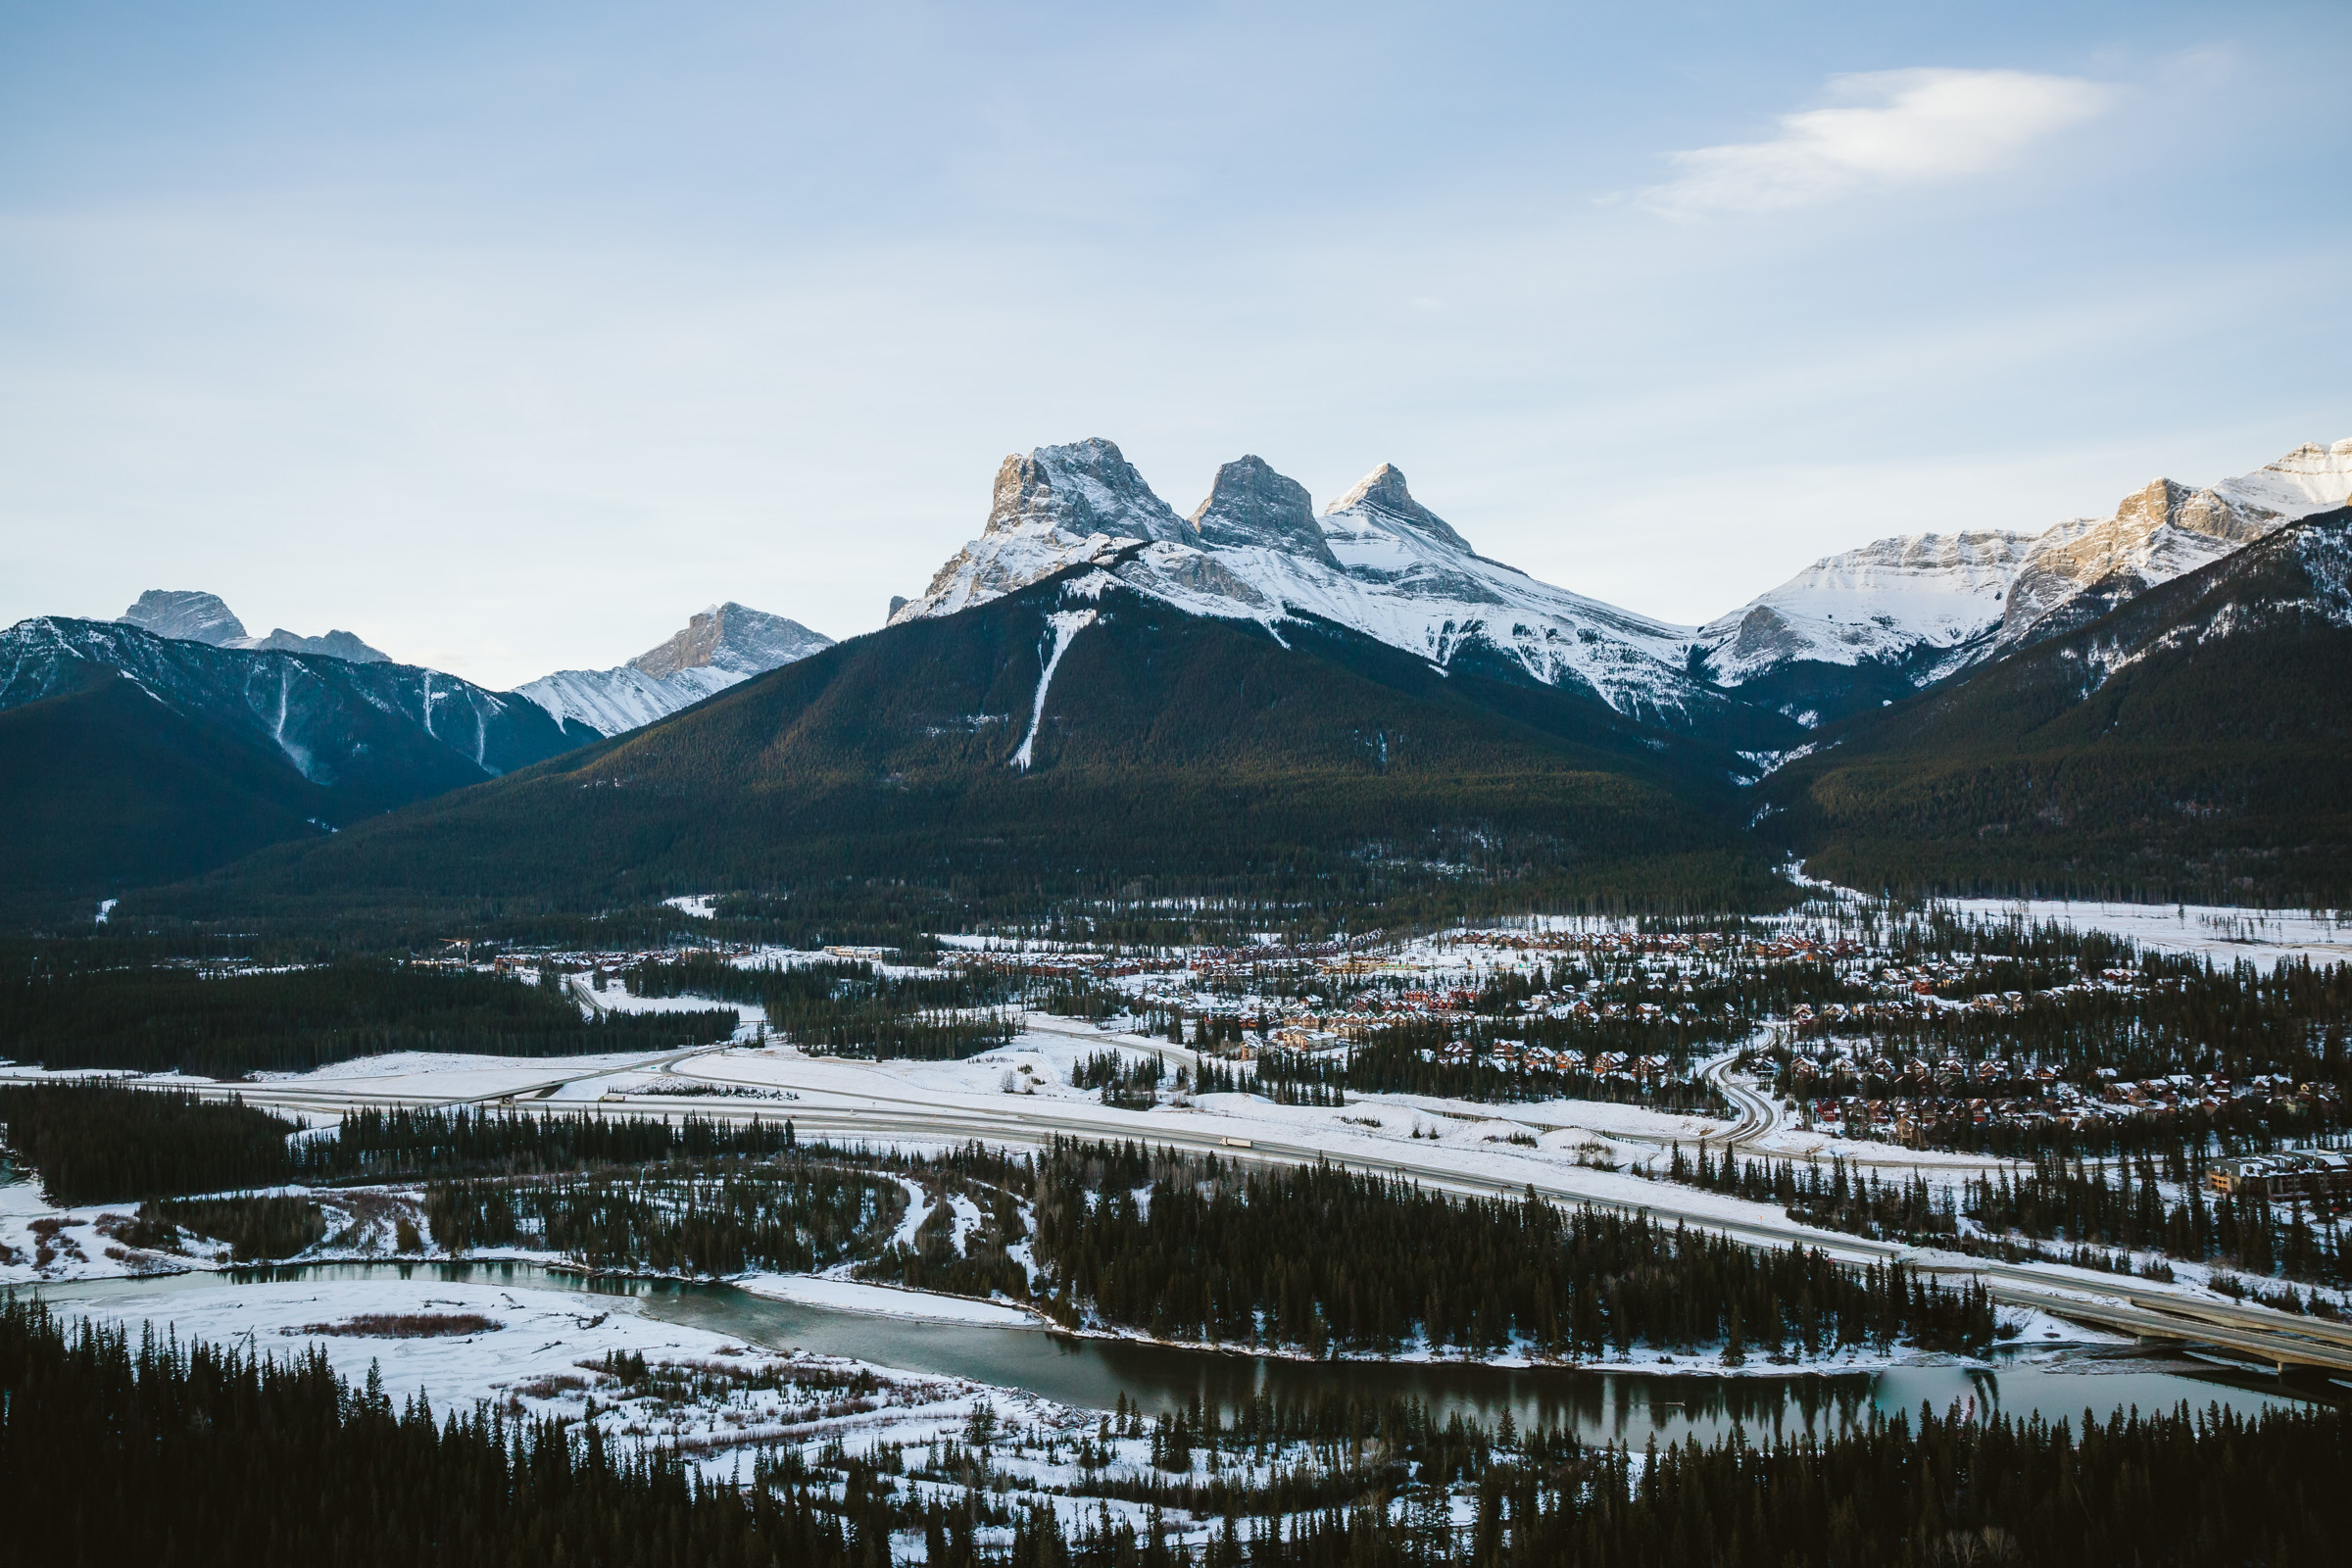 canada-alberta-lifestyle-photography-mikeseehagel-27